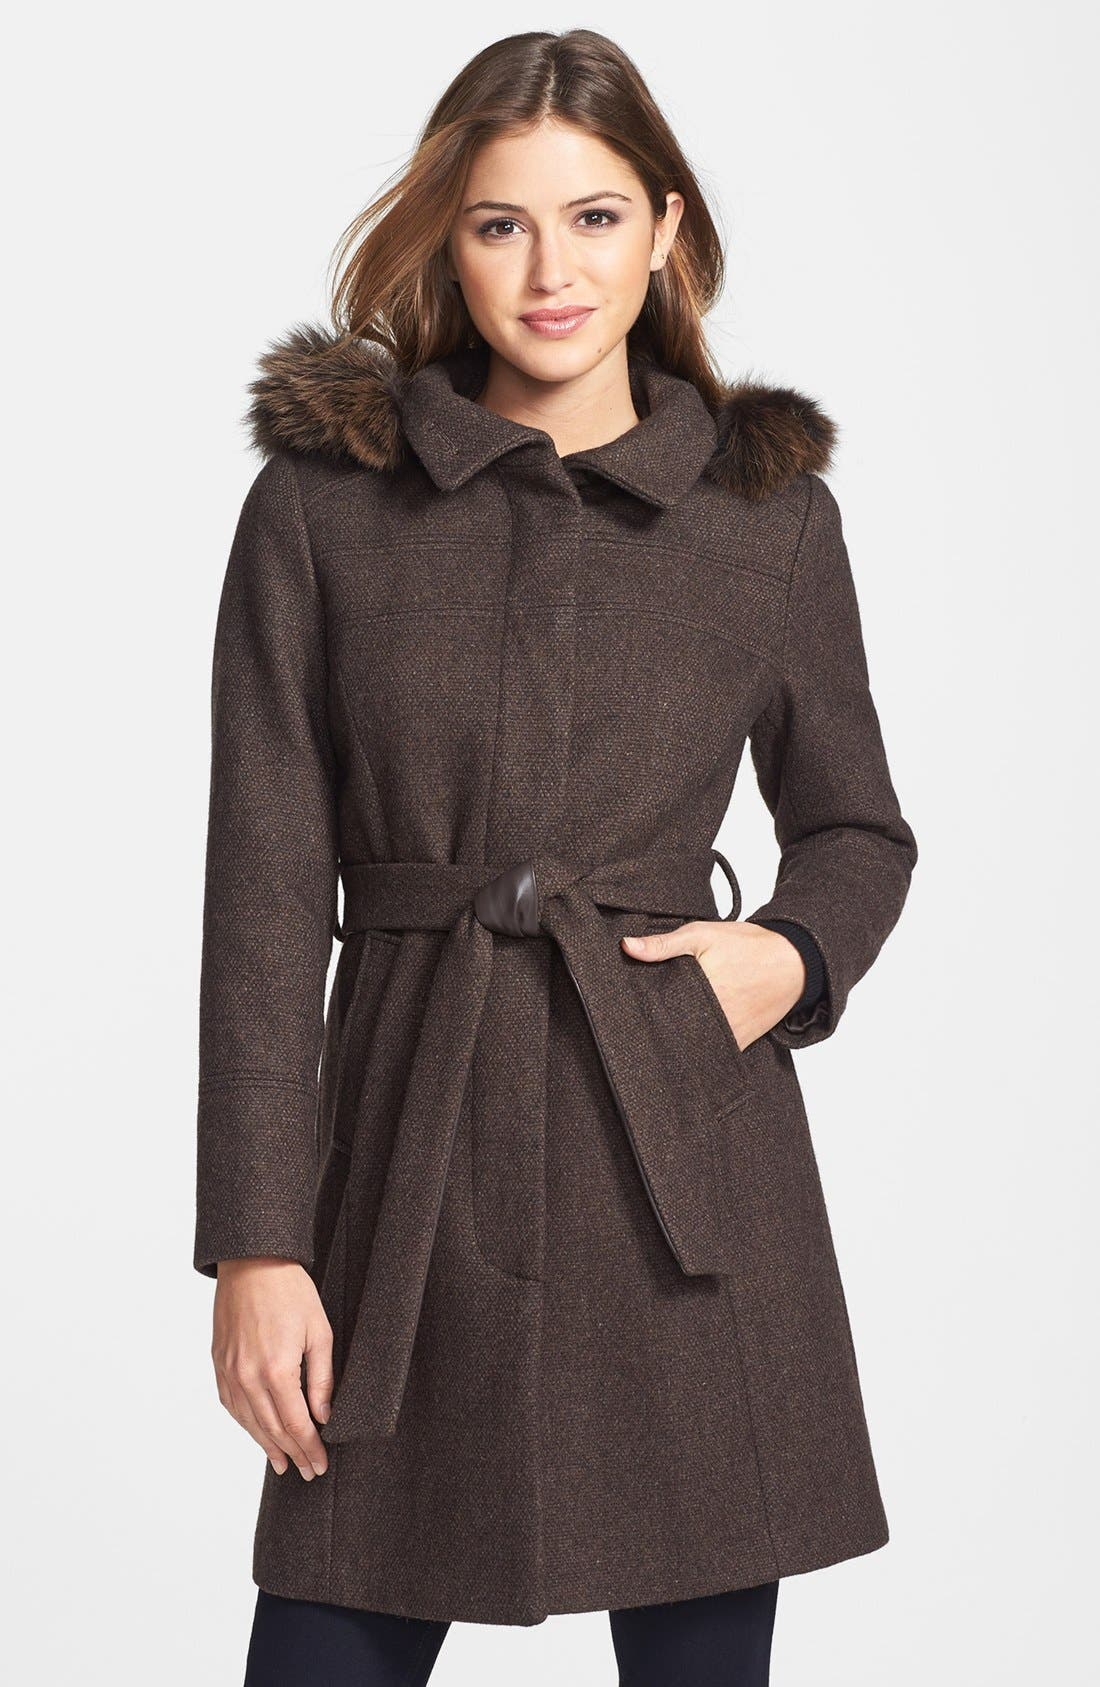 Alternate Image 1 Selected - Ellen Tracy Genuine Fox Fur Trim Hooded Coat (Petite) (Online Only)